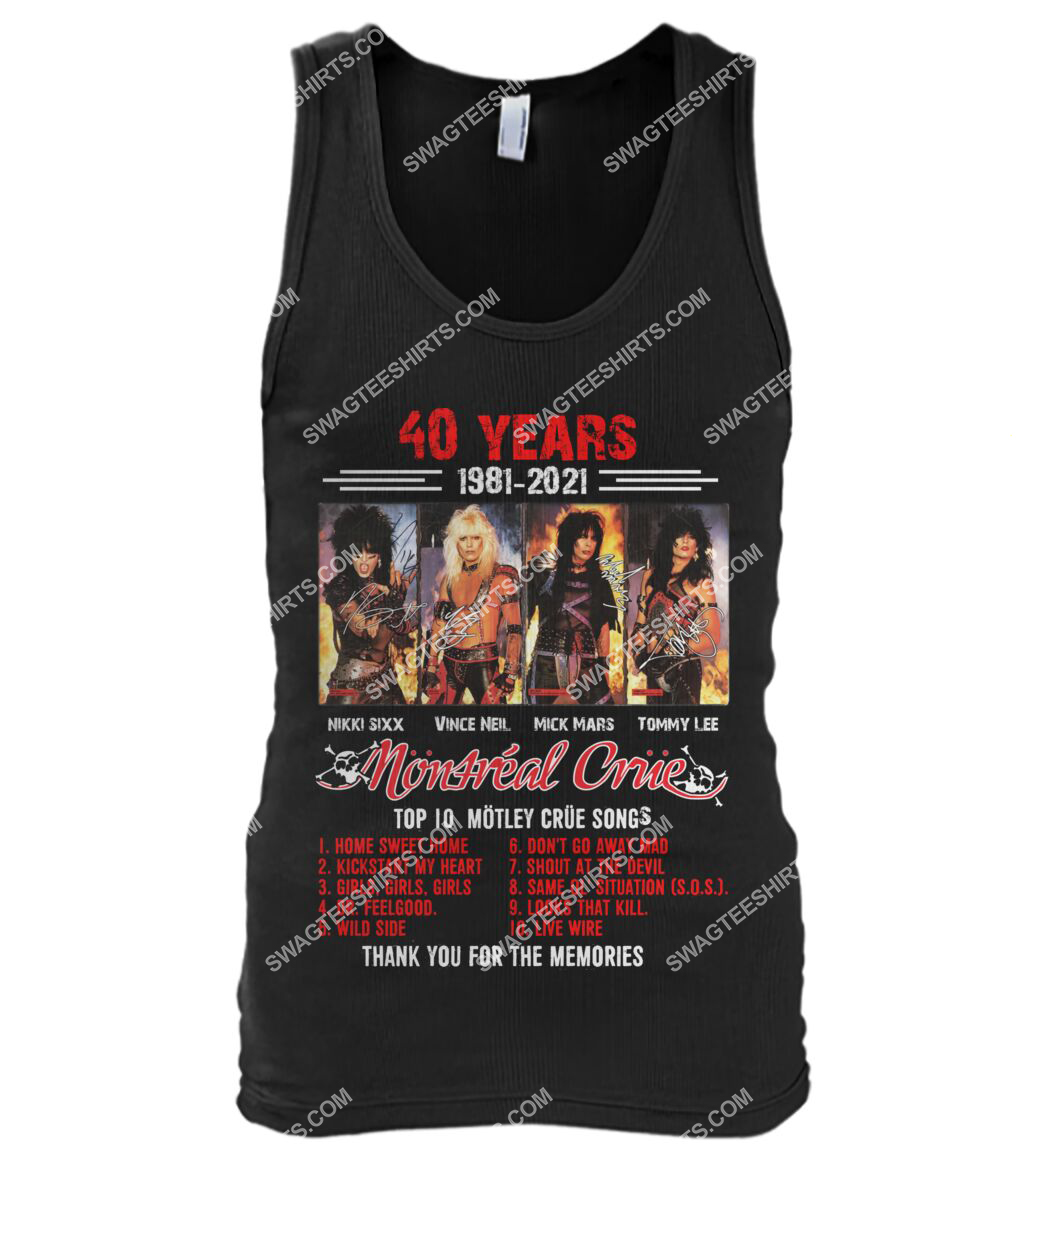 rock band motley crue 40 years thank you for memories signature tank top 1